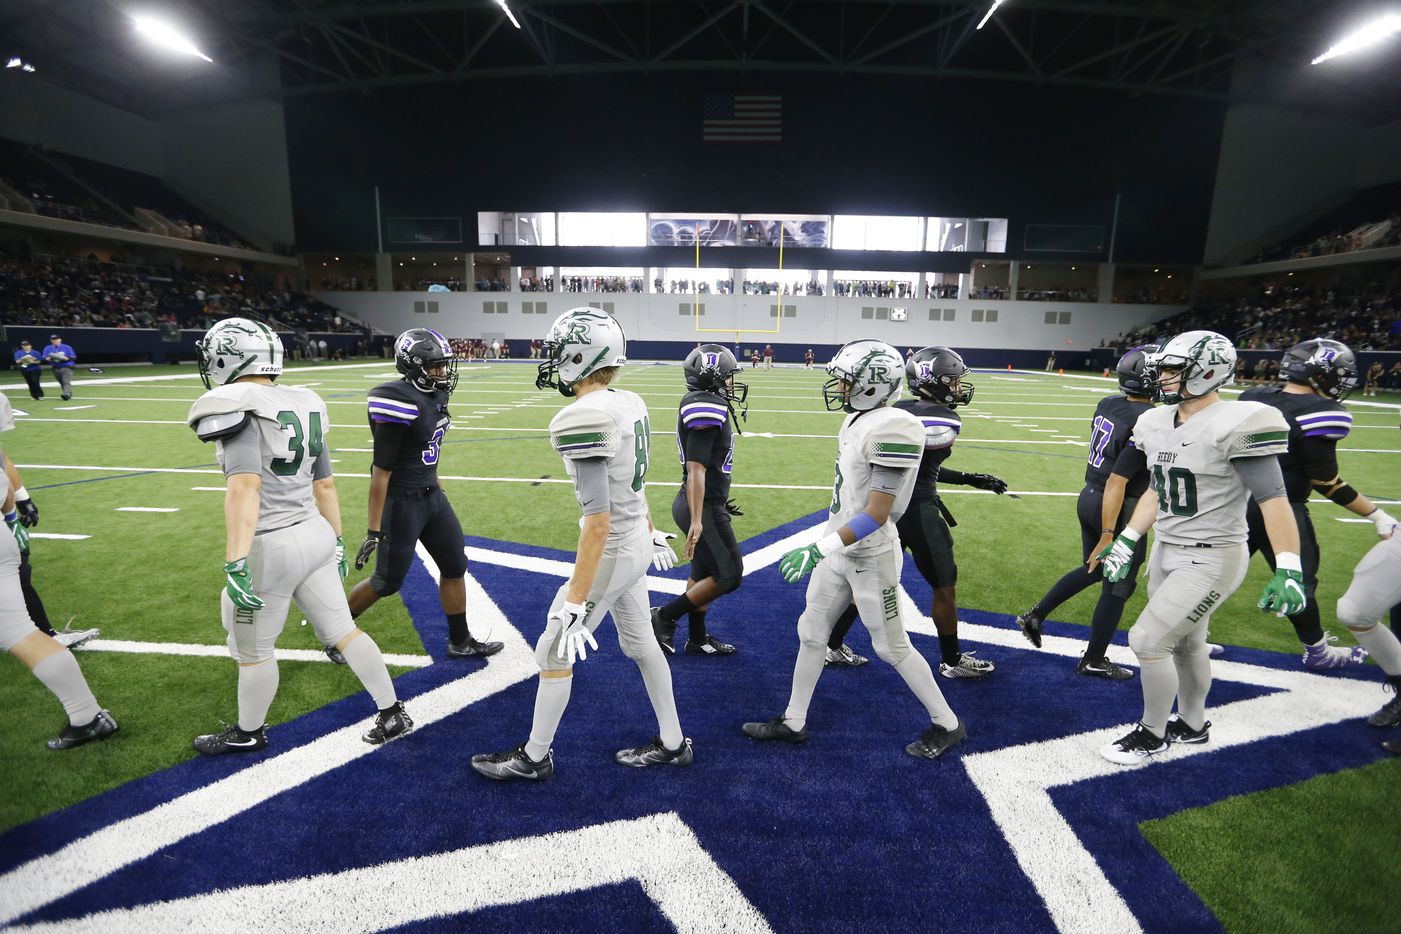 Independence High School and Reedy High School meet at the 50 yard line after playing in the first high school football game at The Star in Frisco on Saturday, August 27, 2016. (Vernon Bryant/The Dallas Morning News)